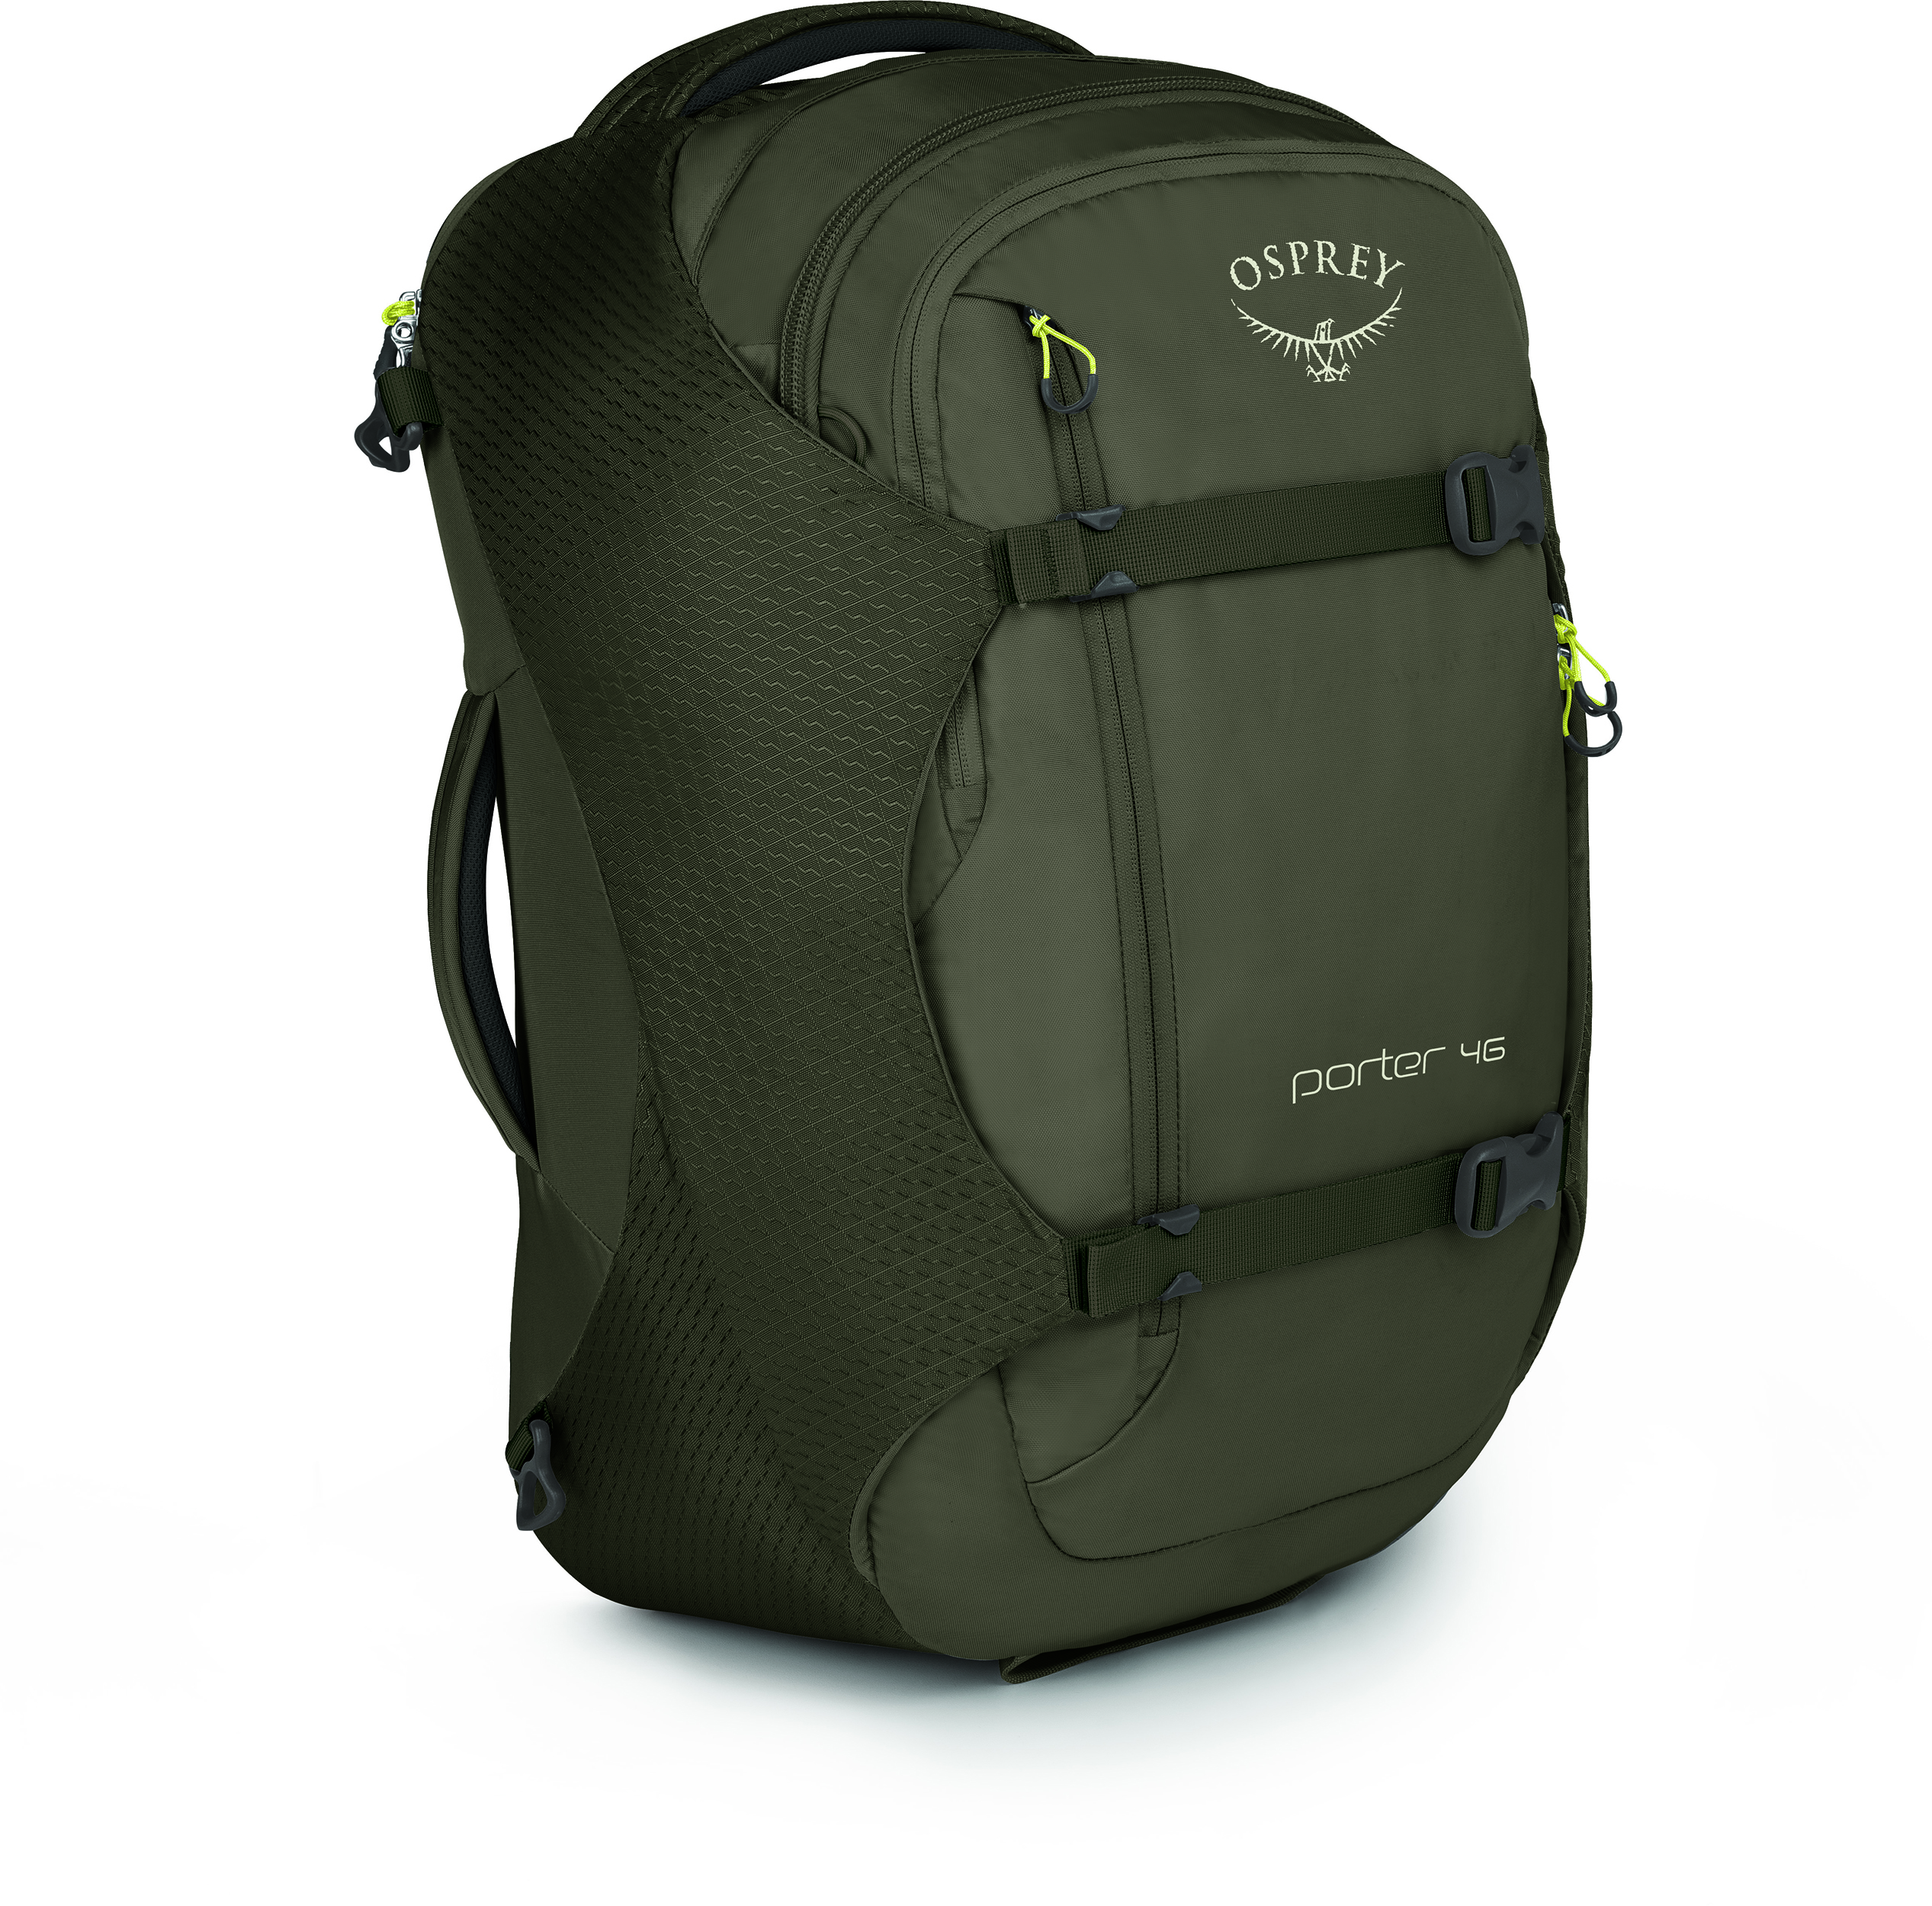 73f3c13dfc Osprey Packs and bags | MEC